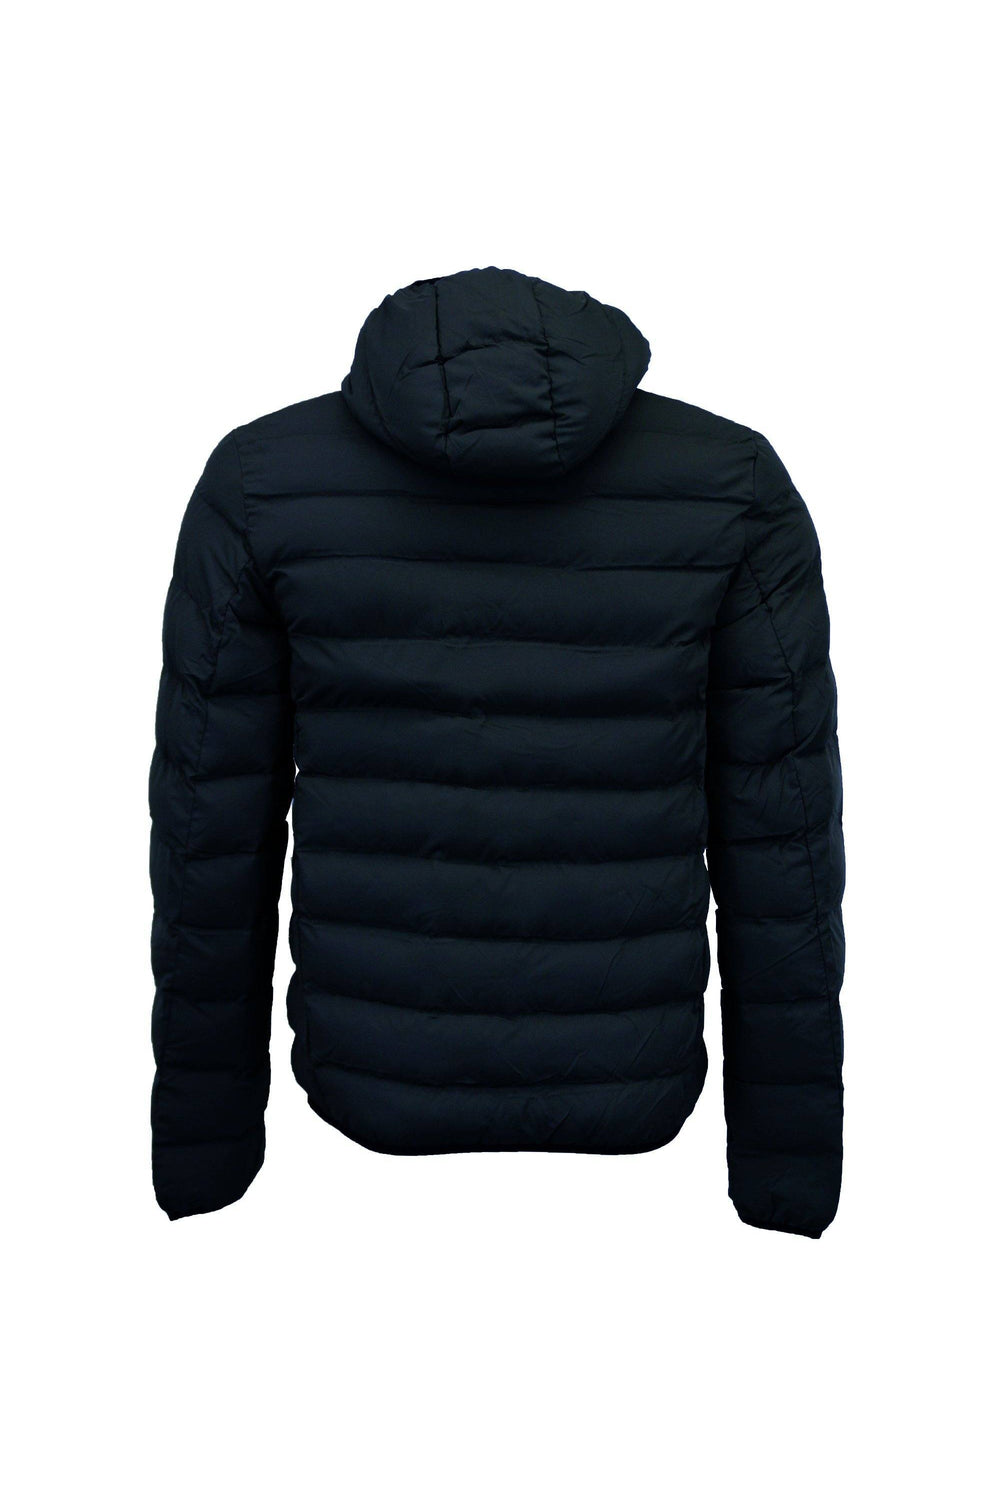 Jackets - Puffer Jacket Navy